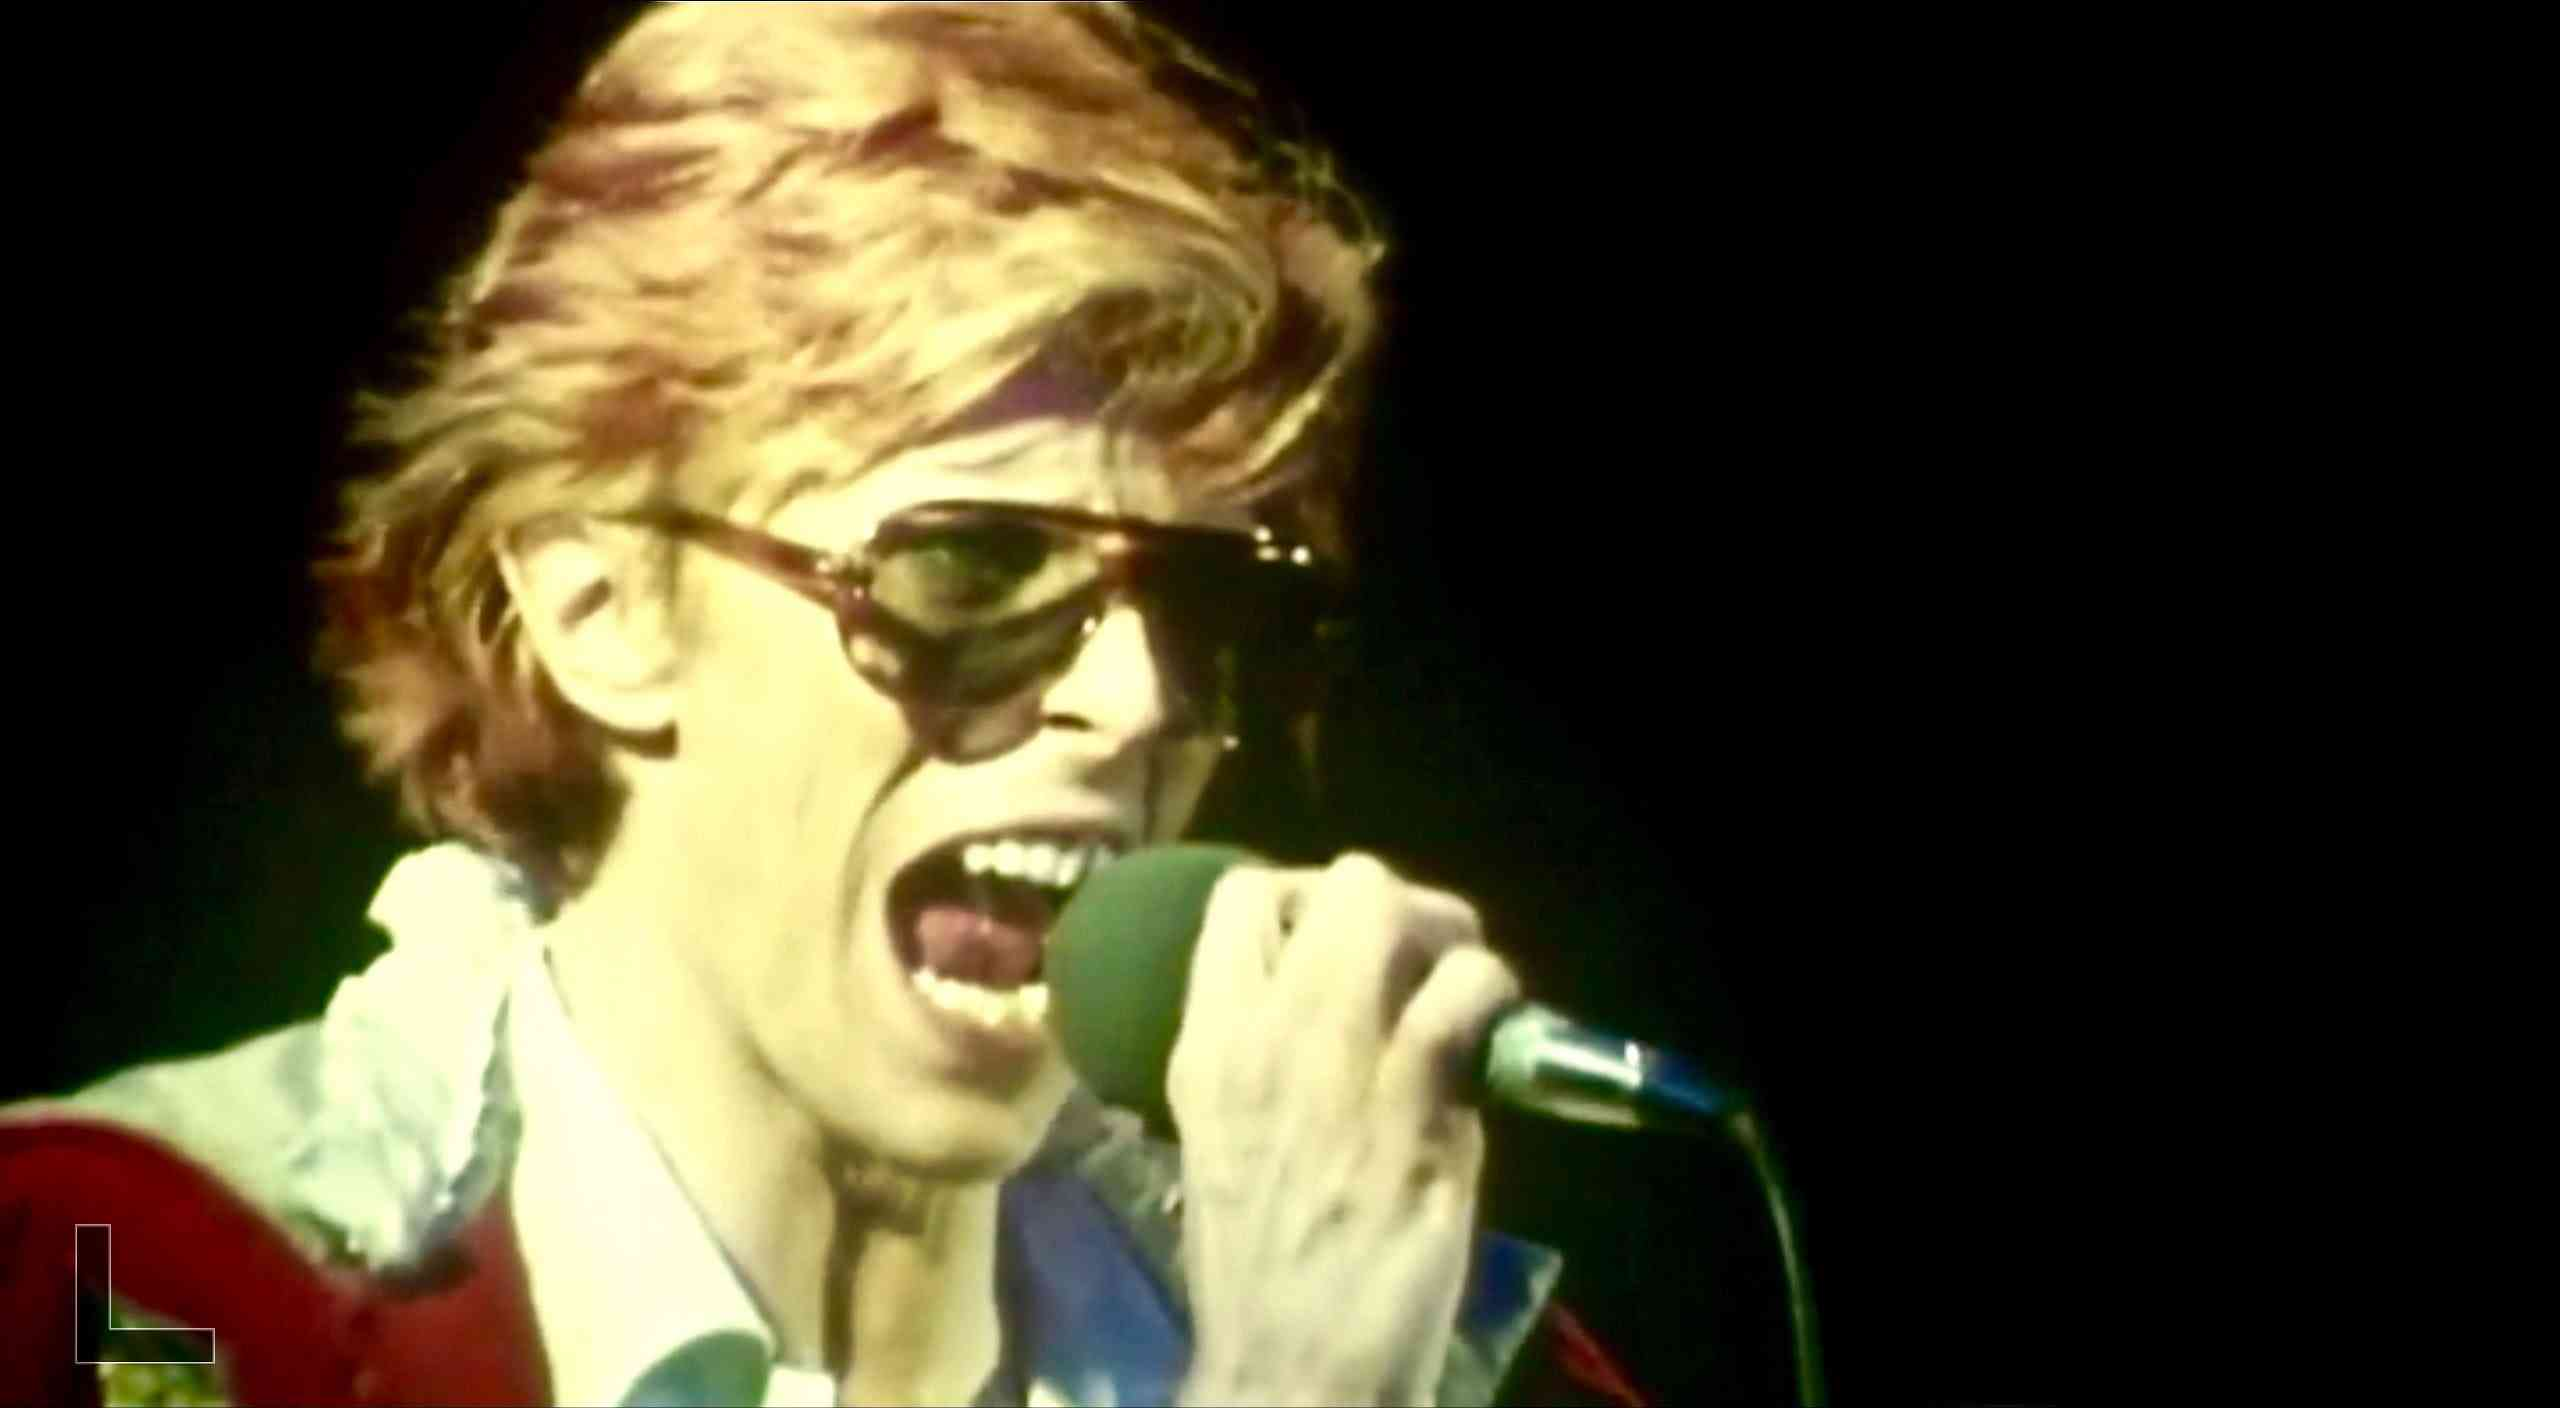 David Bowie - Cracked Actor - Live at the Universal Amphitheatre - 09/05/1974 - YouTube